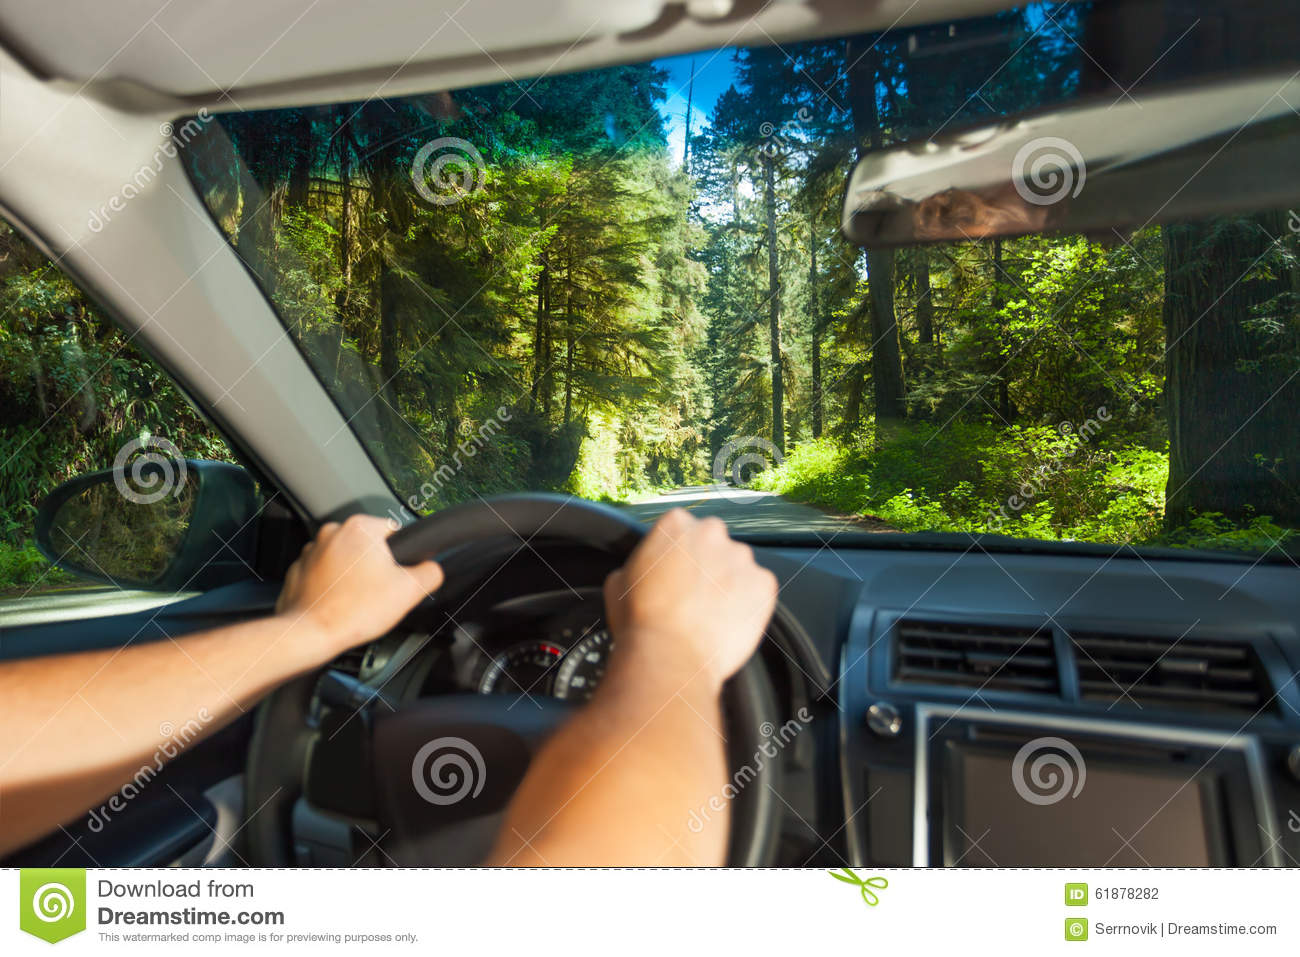 Hands of driving man inside the car in Redwood